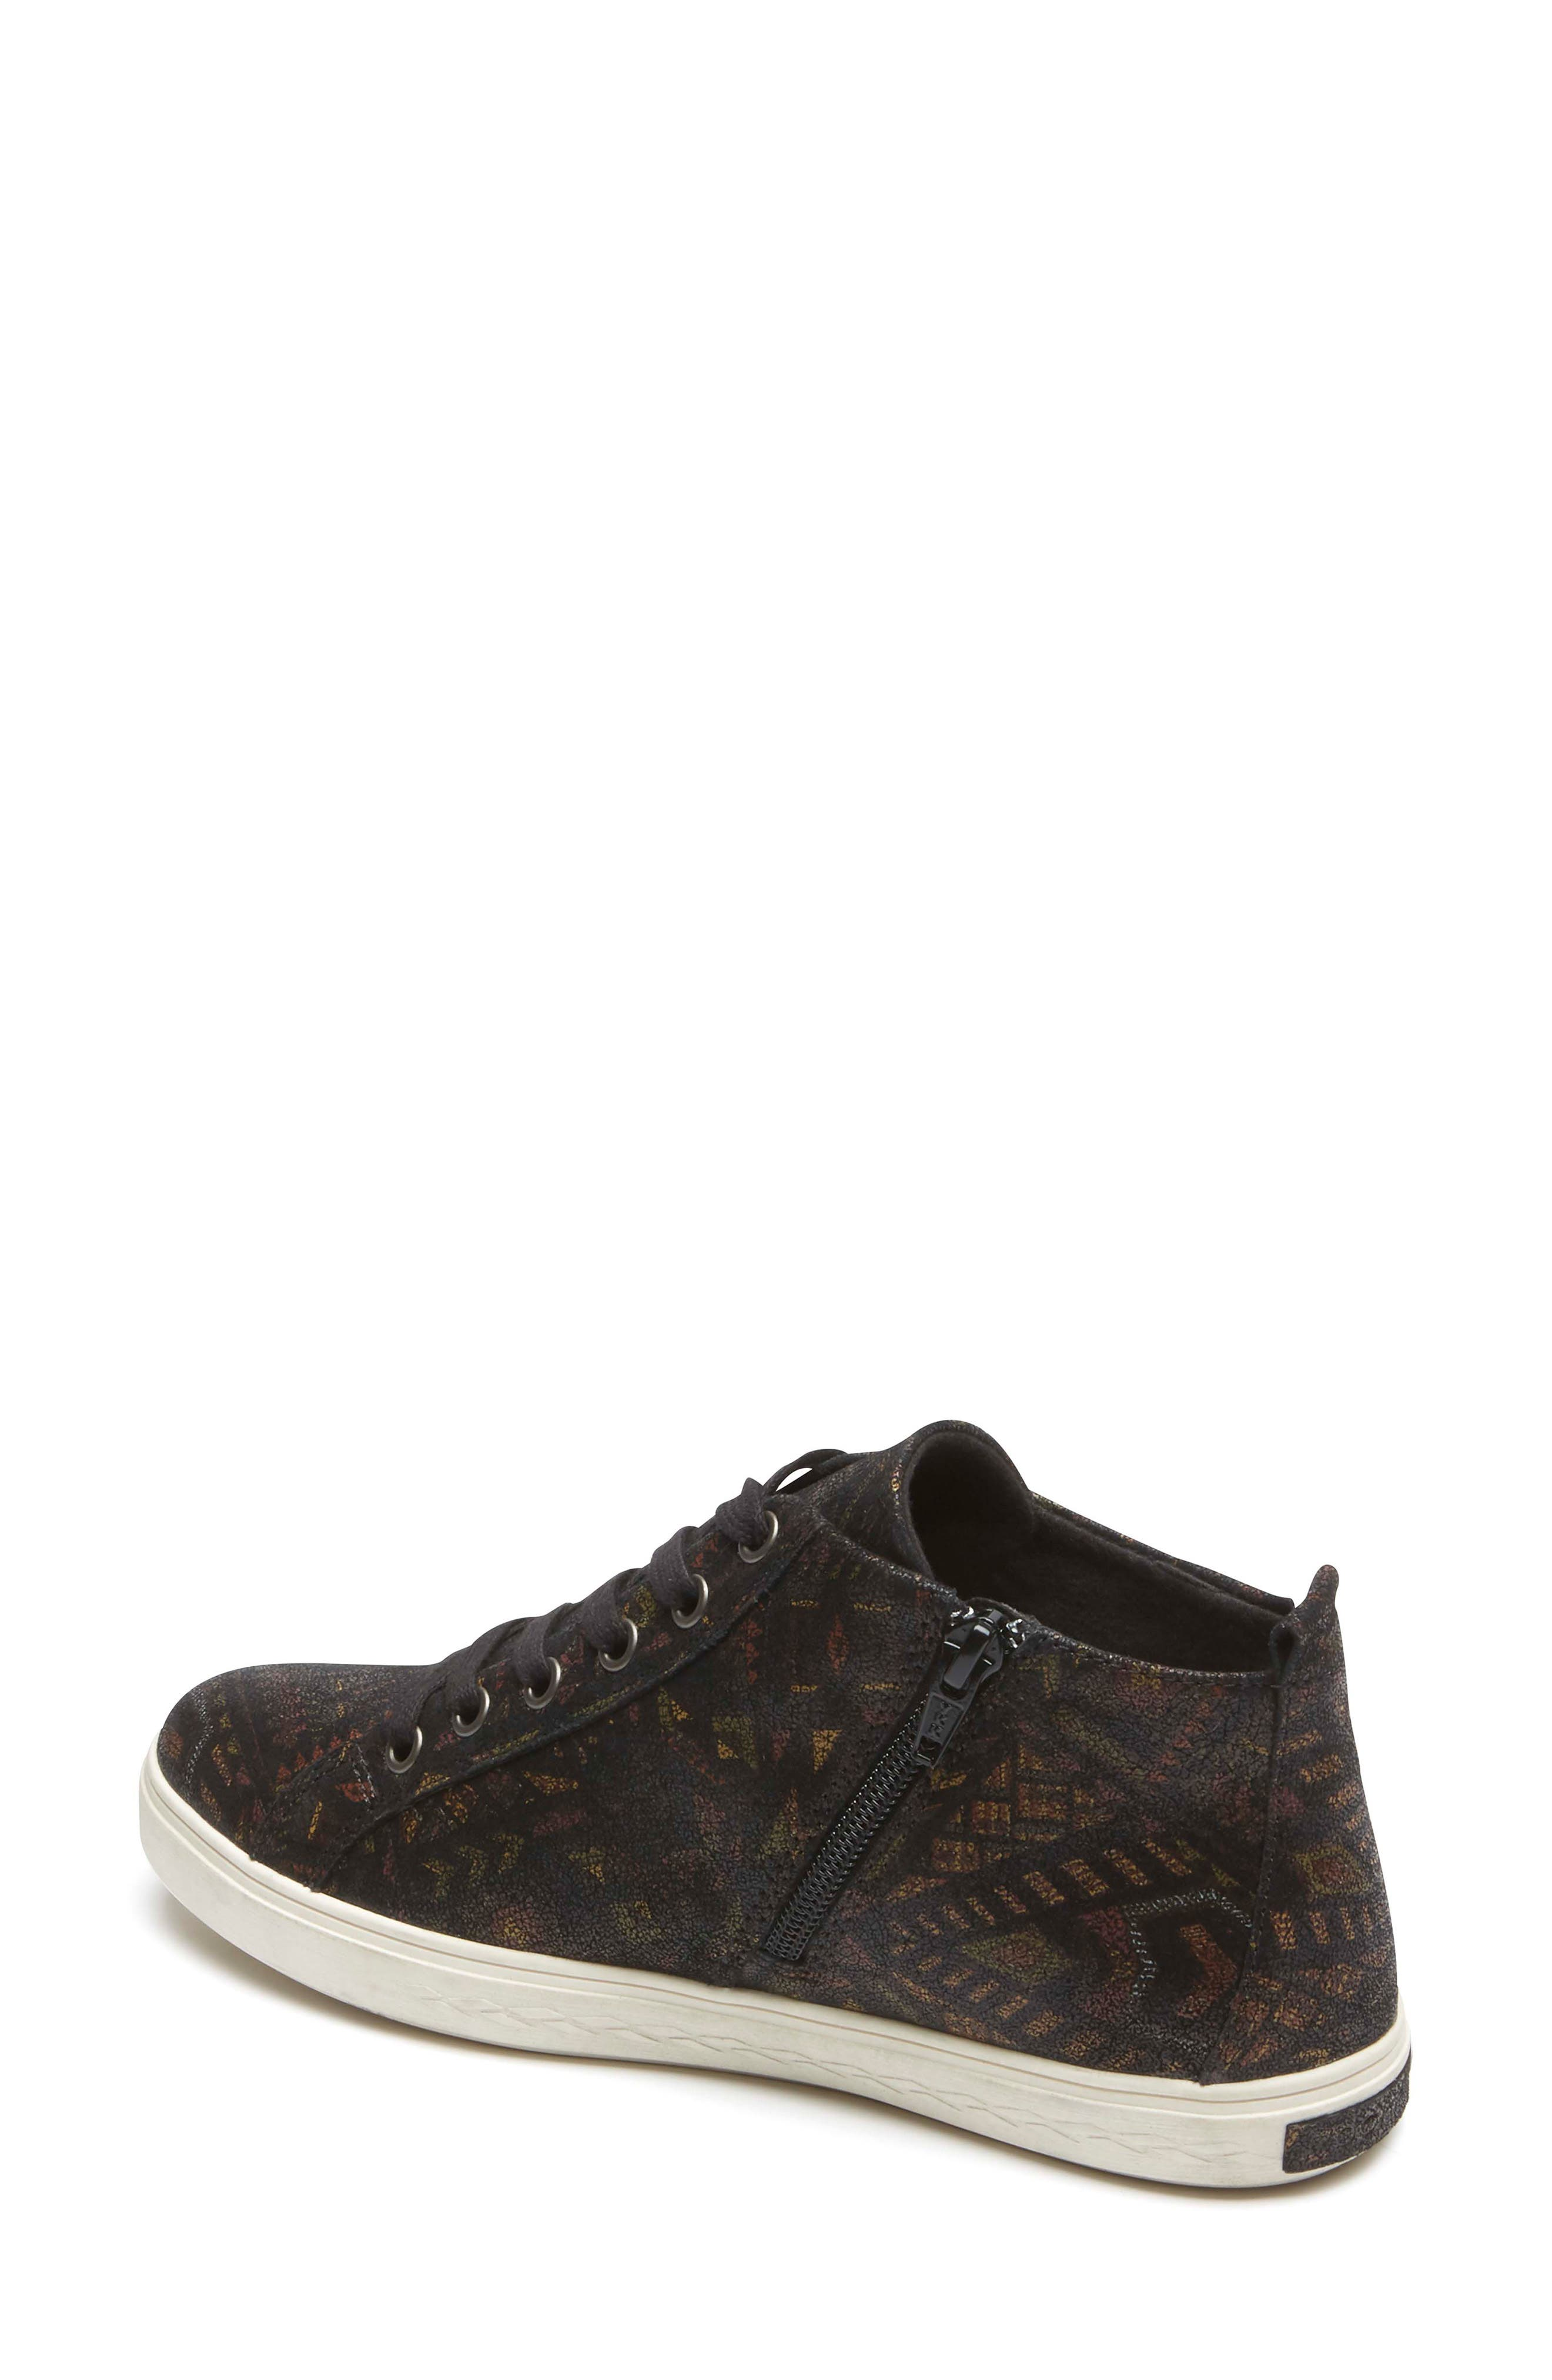 Willa High Top Sneaker,                             Alternate thumbnail 2, color,                             NOVELTY PRINT LEATHER